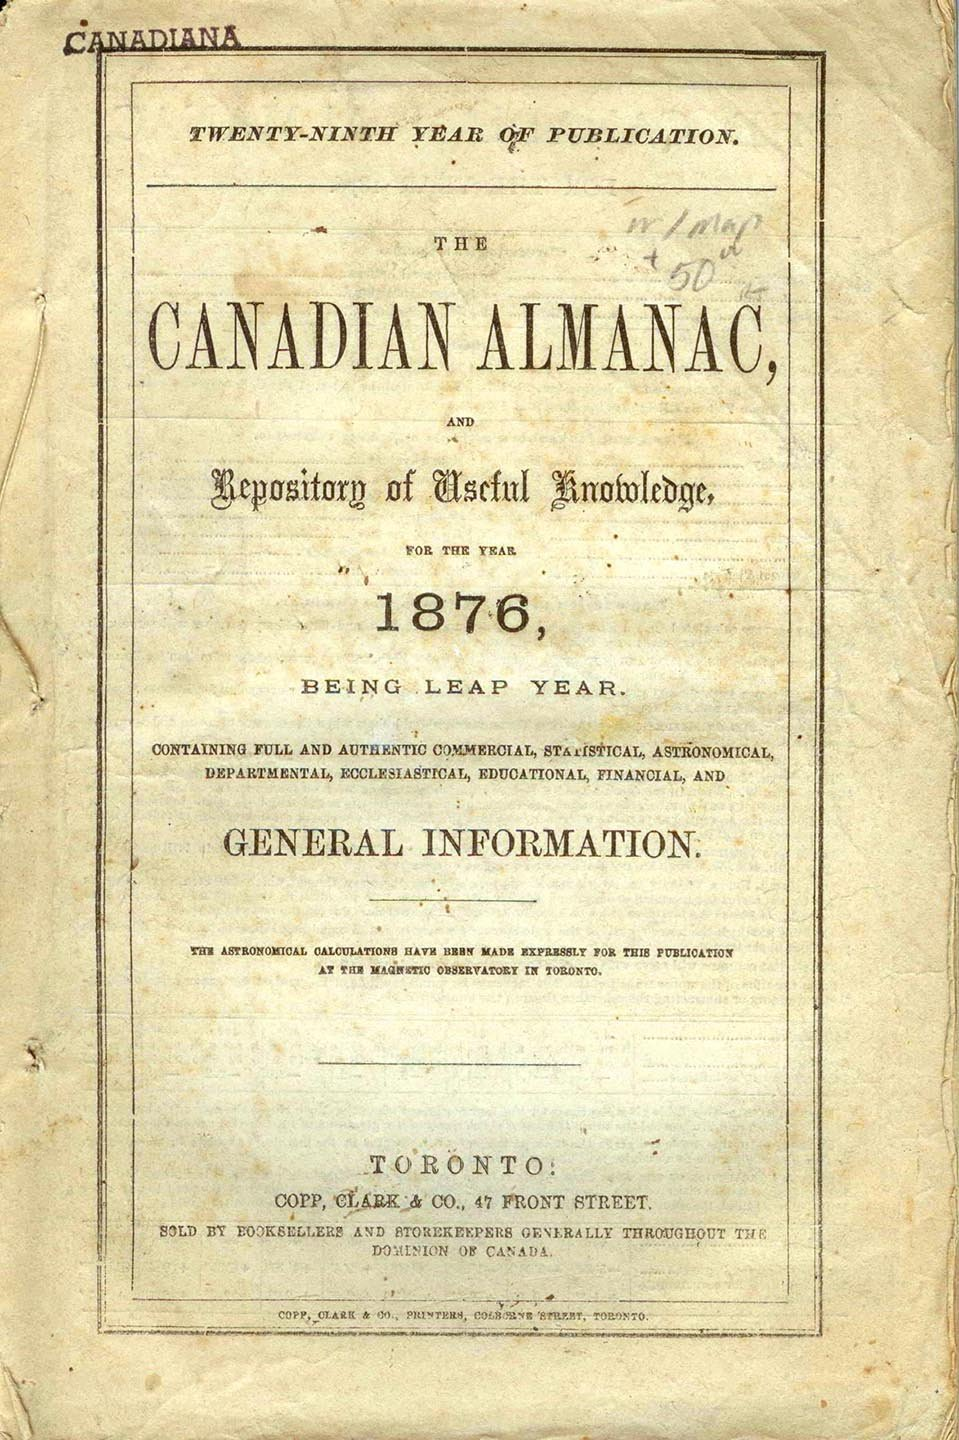 The Canadian Almanac, and Repository of Useful Knowledge for the Year 1876